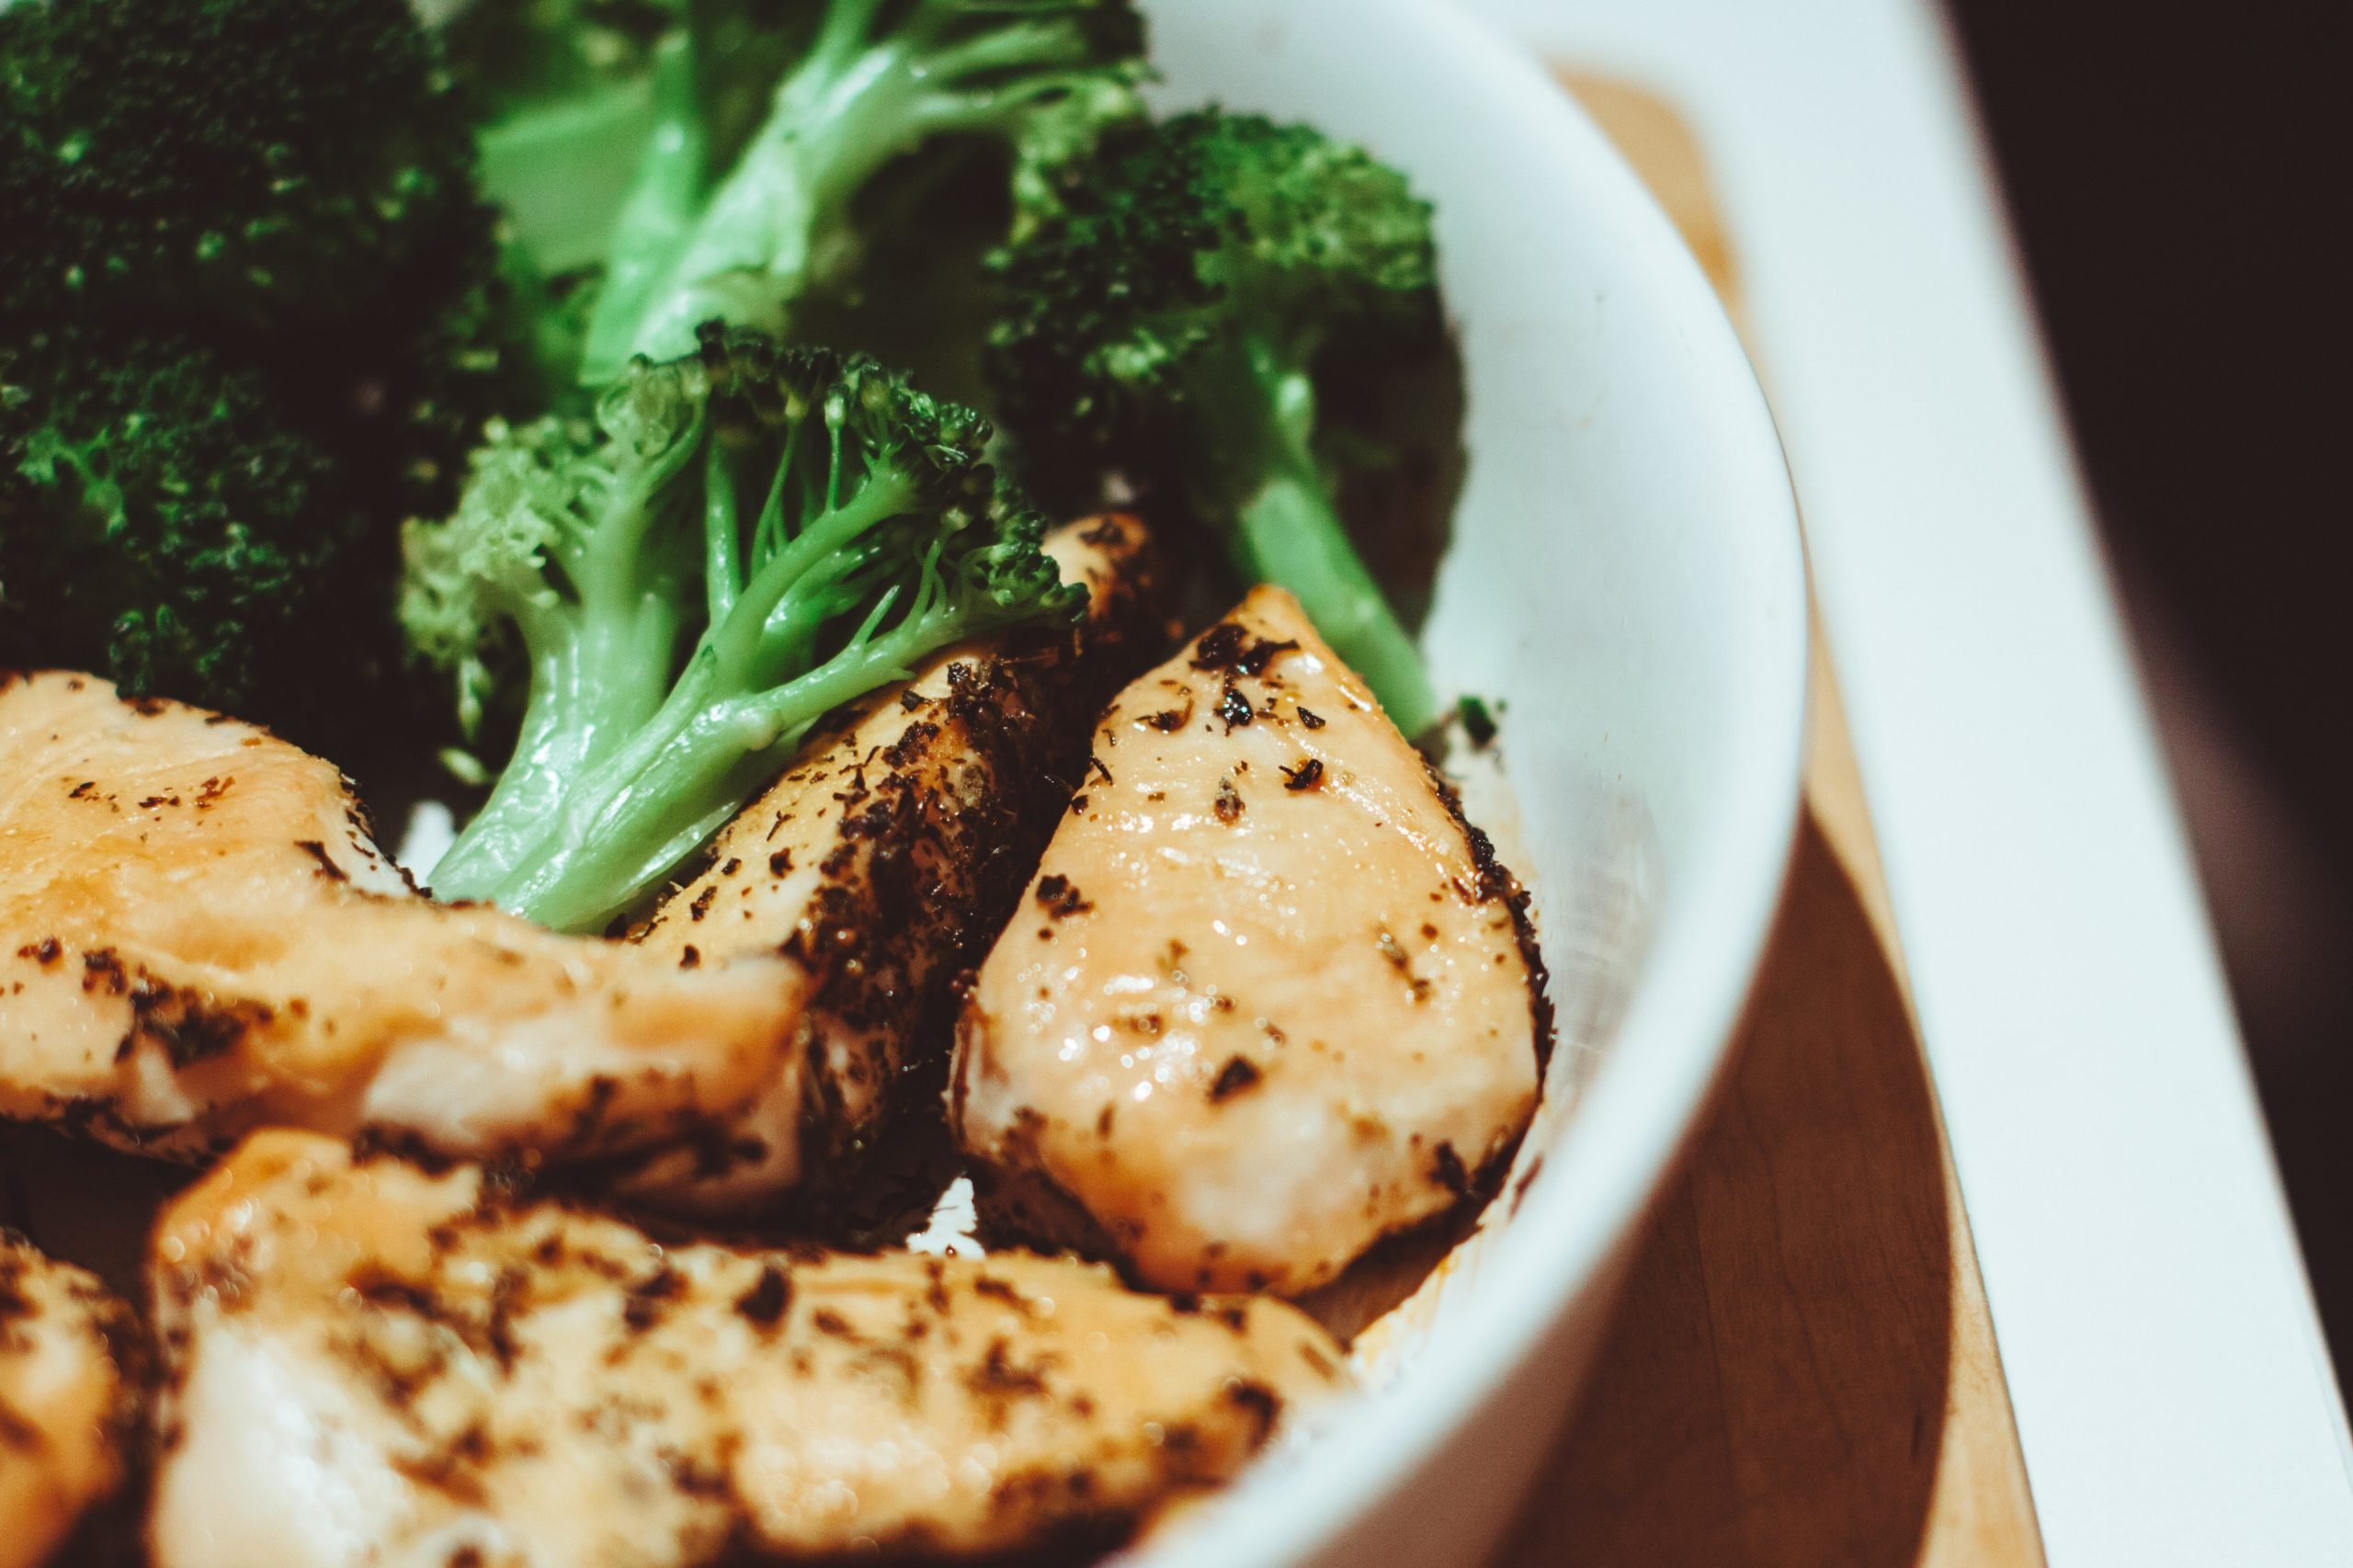 The Paleo Diet: What is it really?